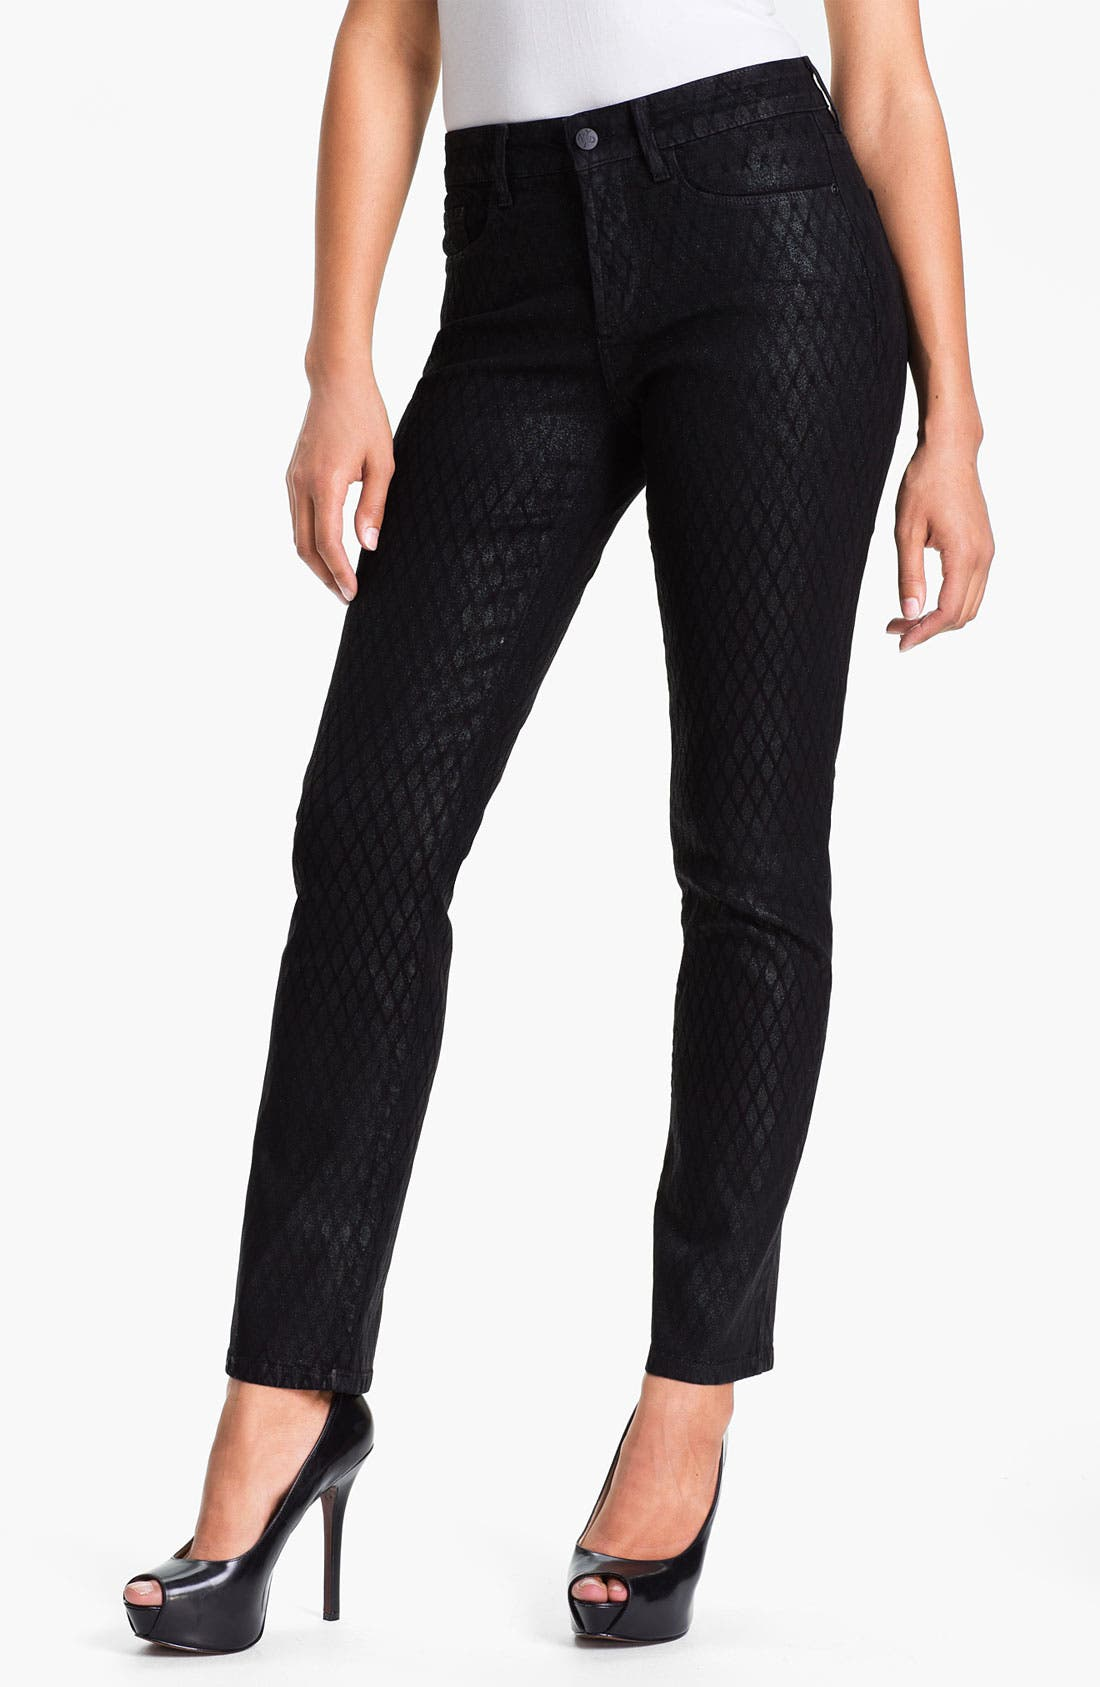 Alternate Image 1 Selected - NYDJ 'Sheri' Print Stretch Skinny Jeans (Petite)